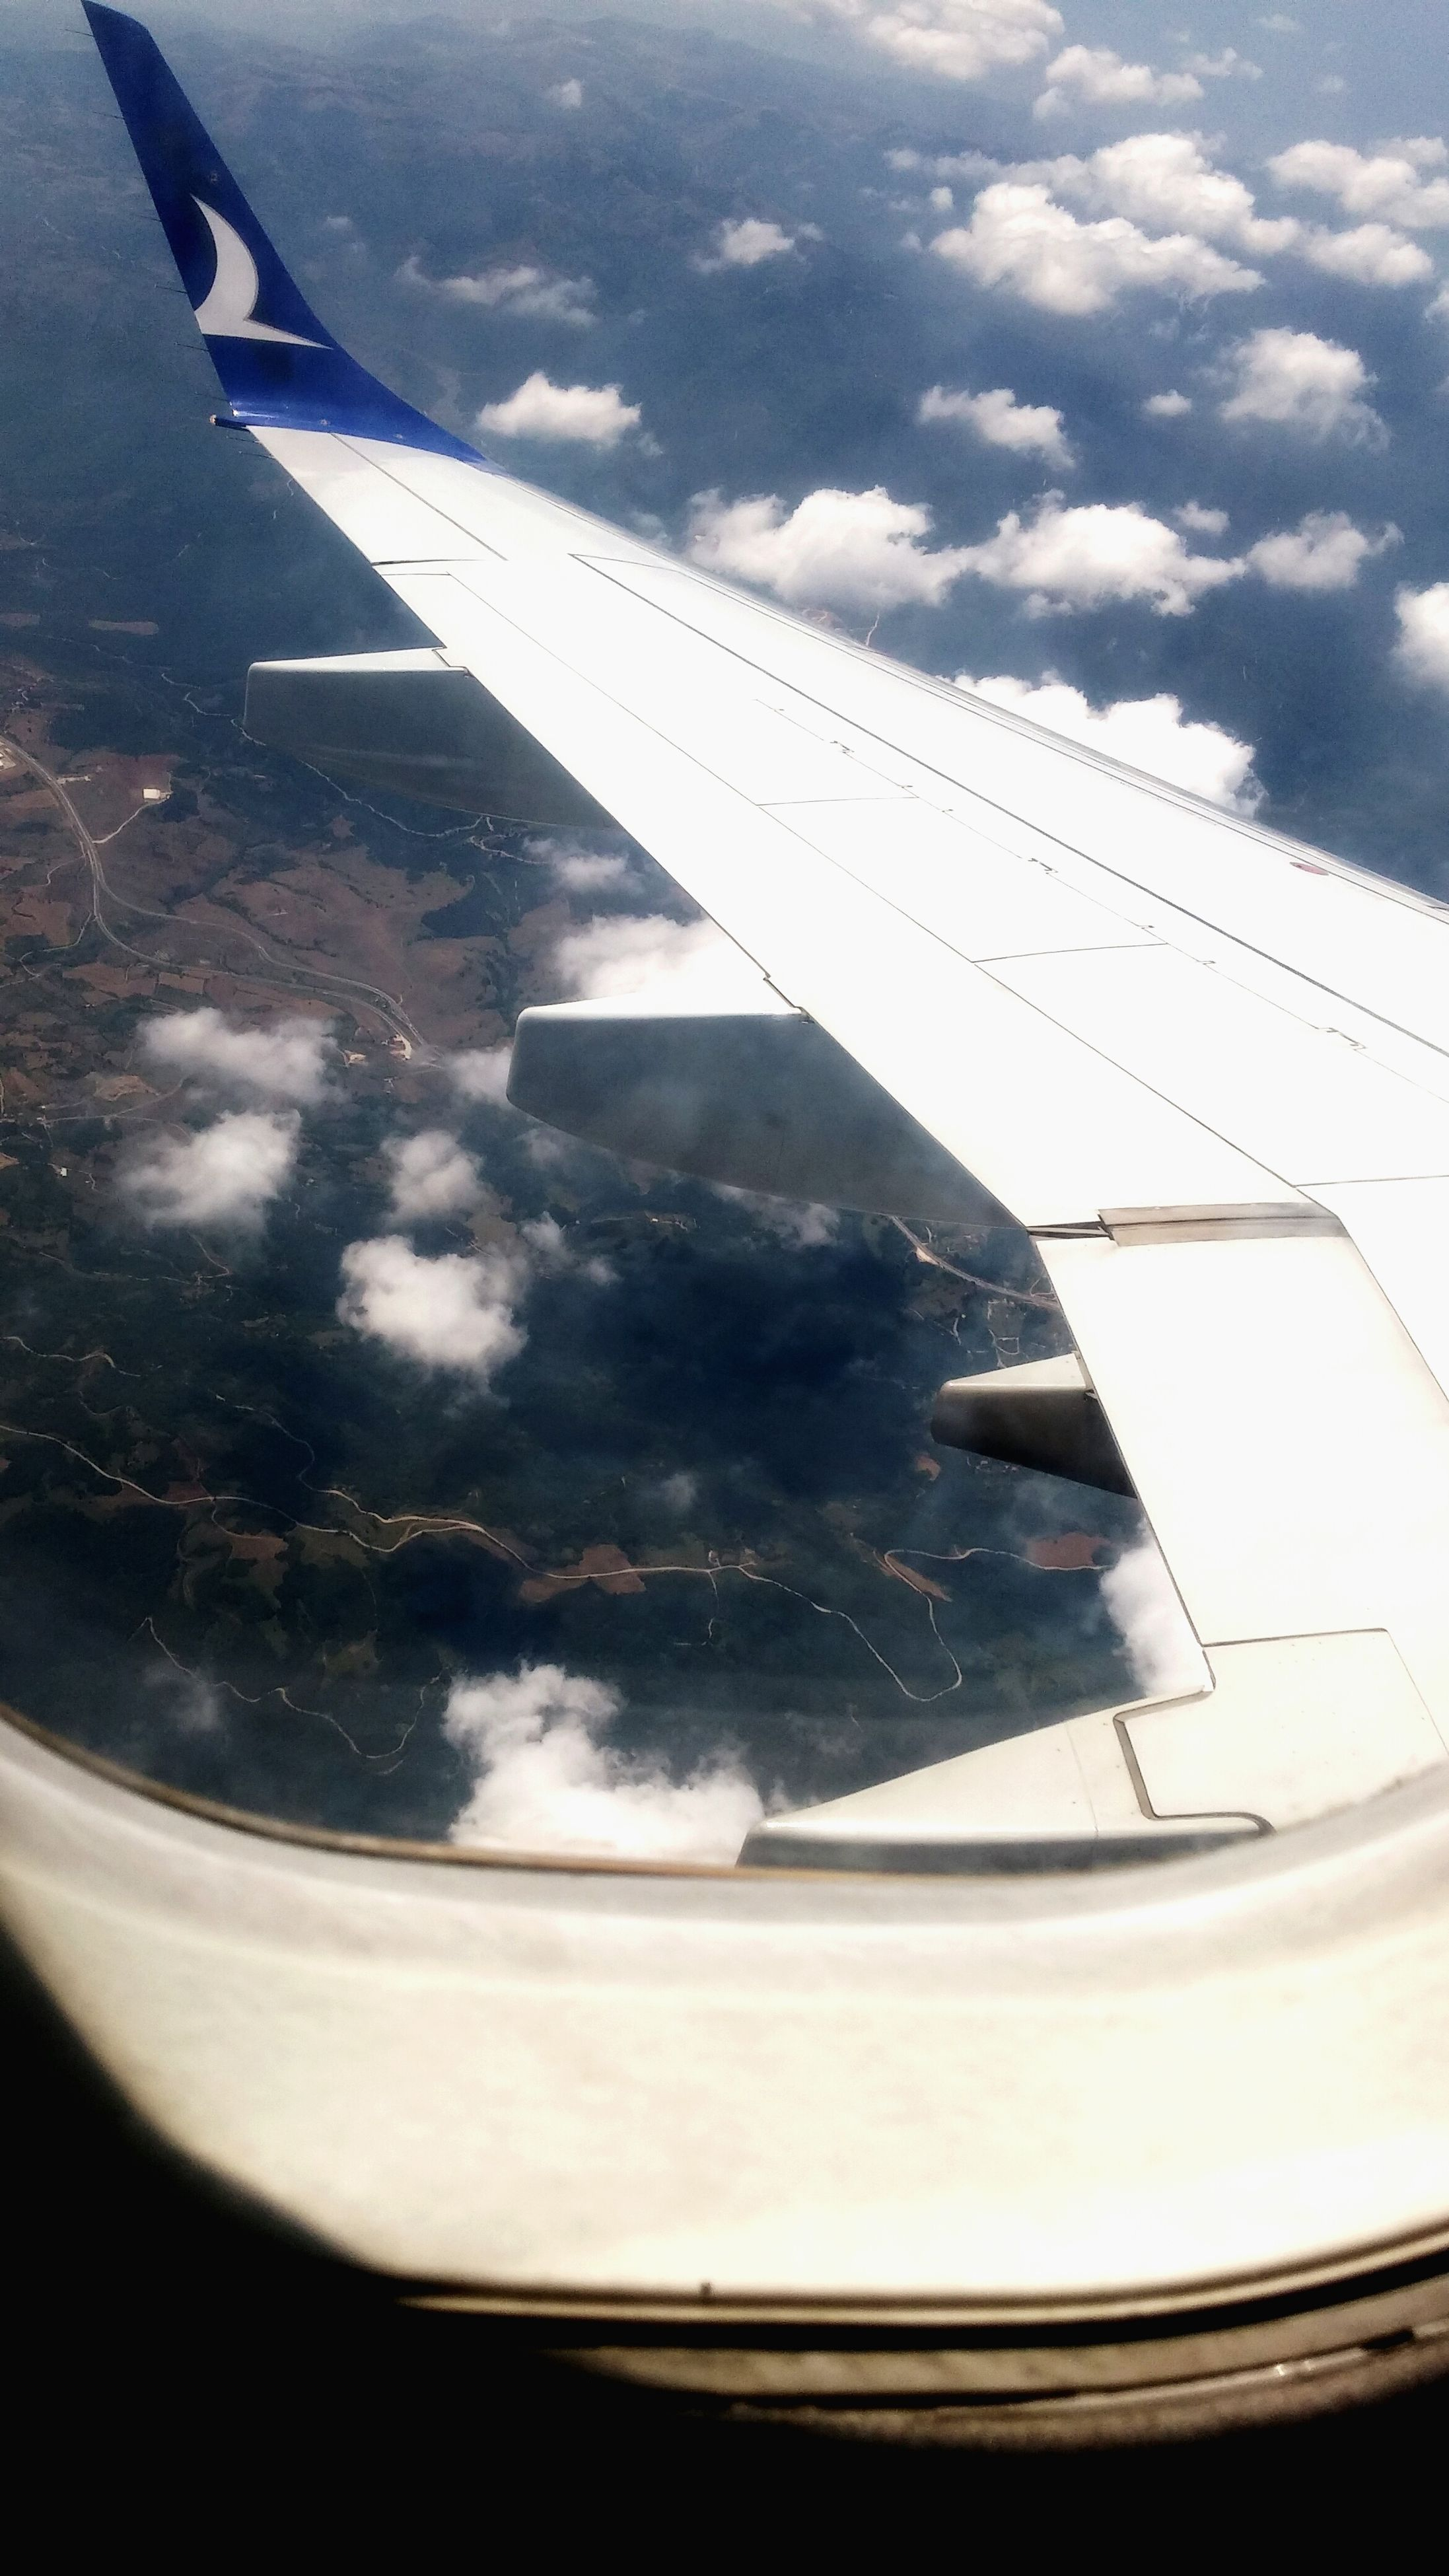 airplane, aircraft wing, transportation, air vehicle, flying, mode of transport, part of, cropped, aerial view, mid-air, travel, on the move, sky, airplane wing, vehicle part, journey, cloud - sky, public transportation, nature, aeroplane